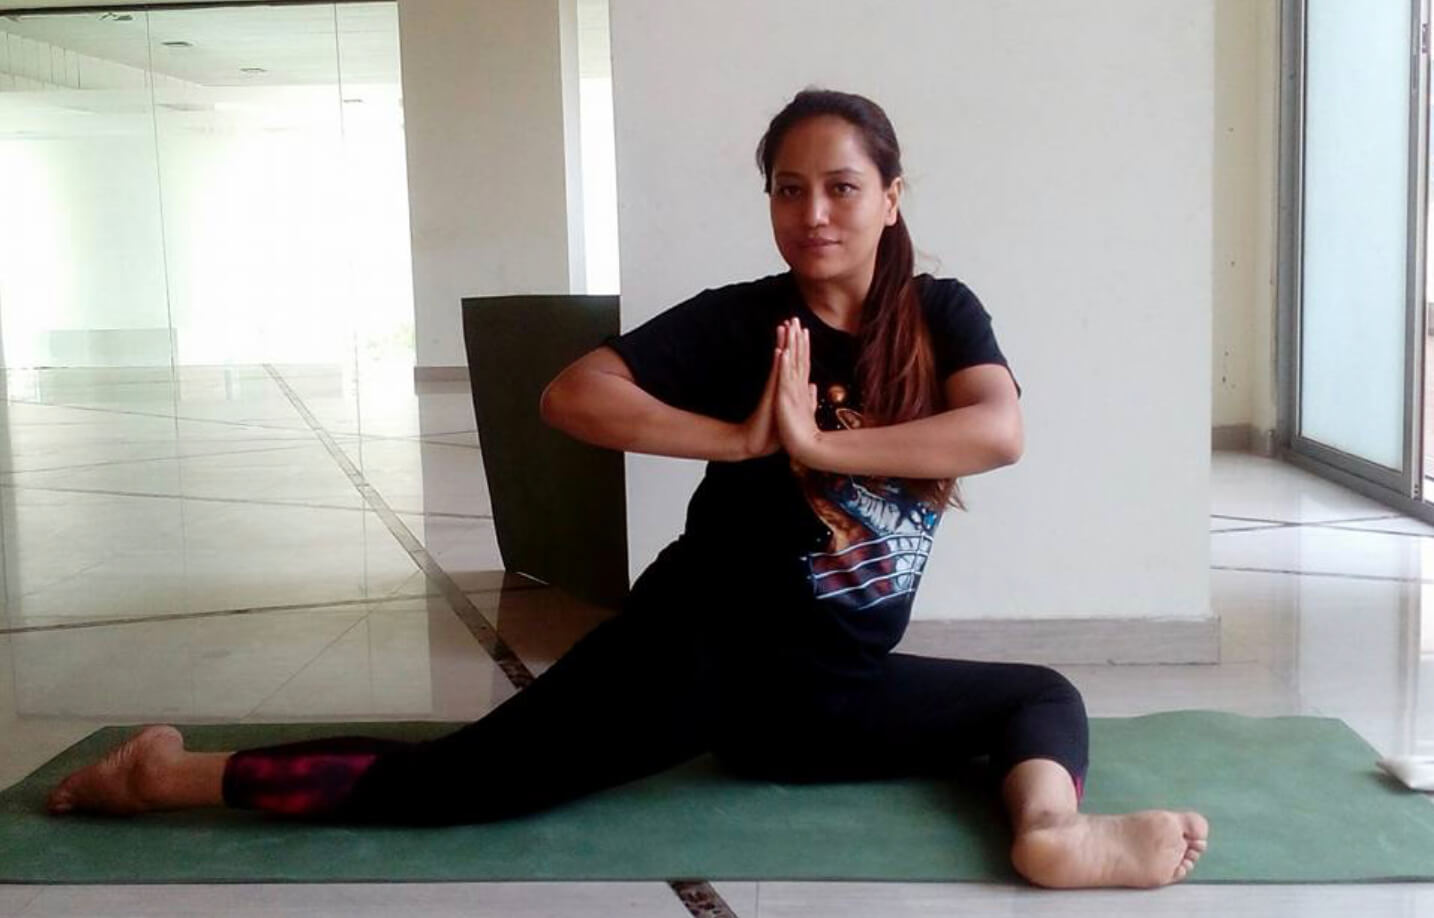 Yoga coach helps patients after testing positive herself